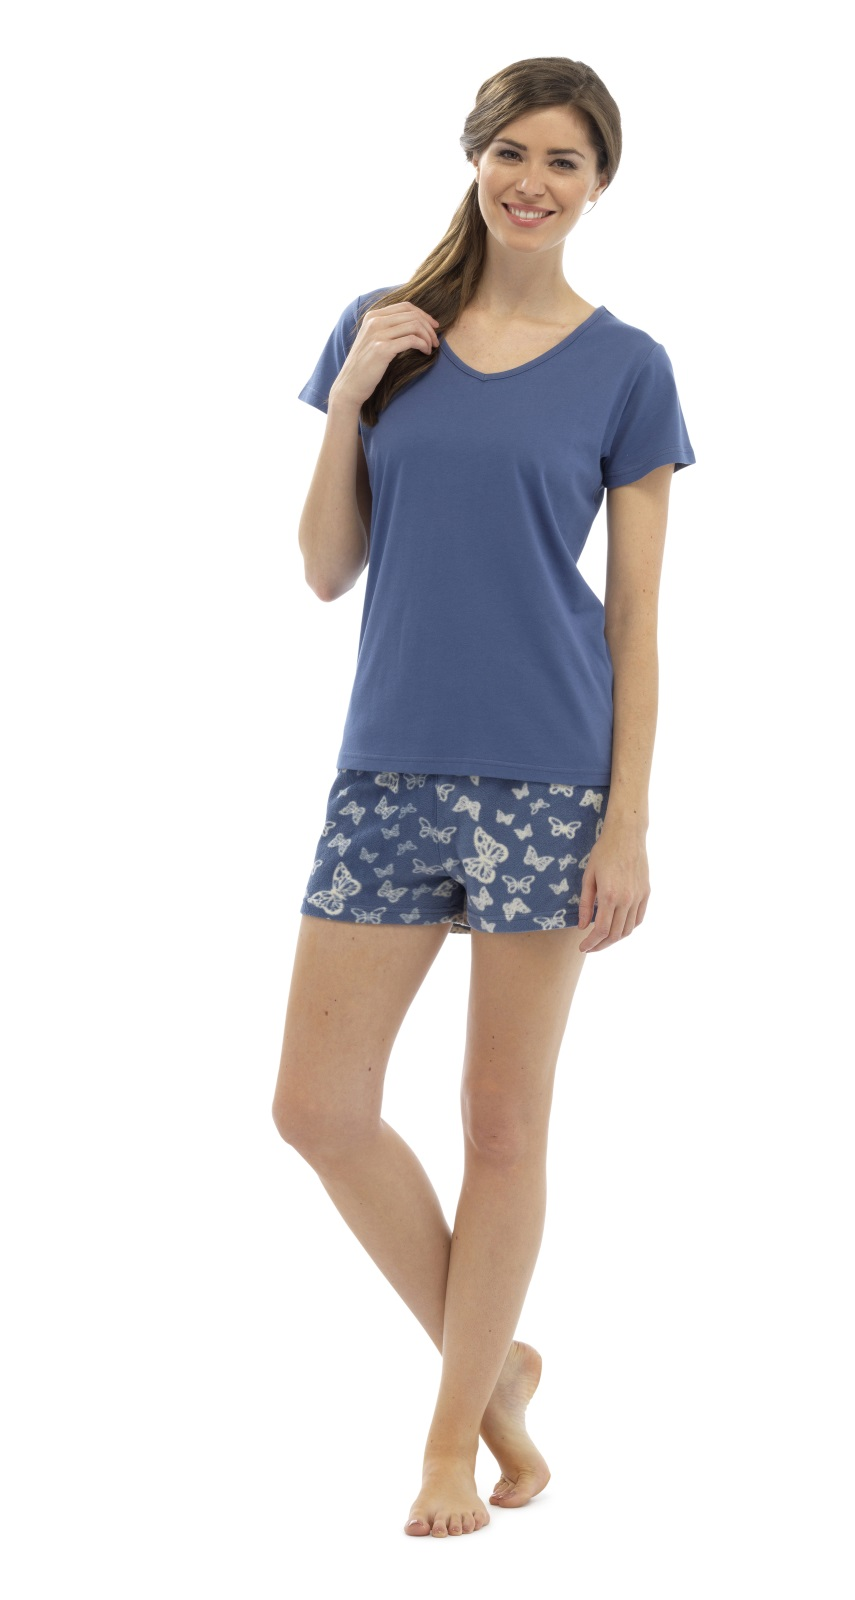 b96529070 Mens & Womens clothing, surf, sports, business and casual wear for men and